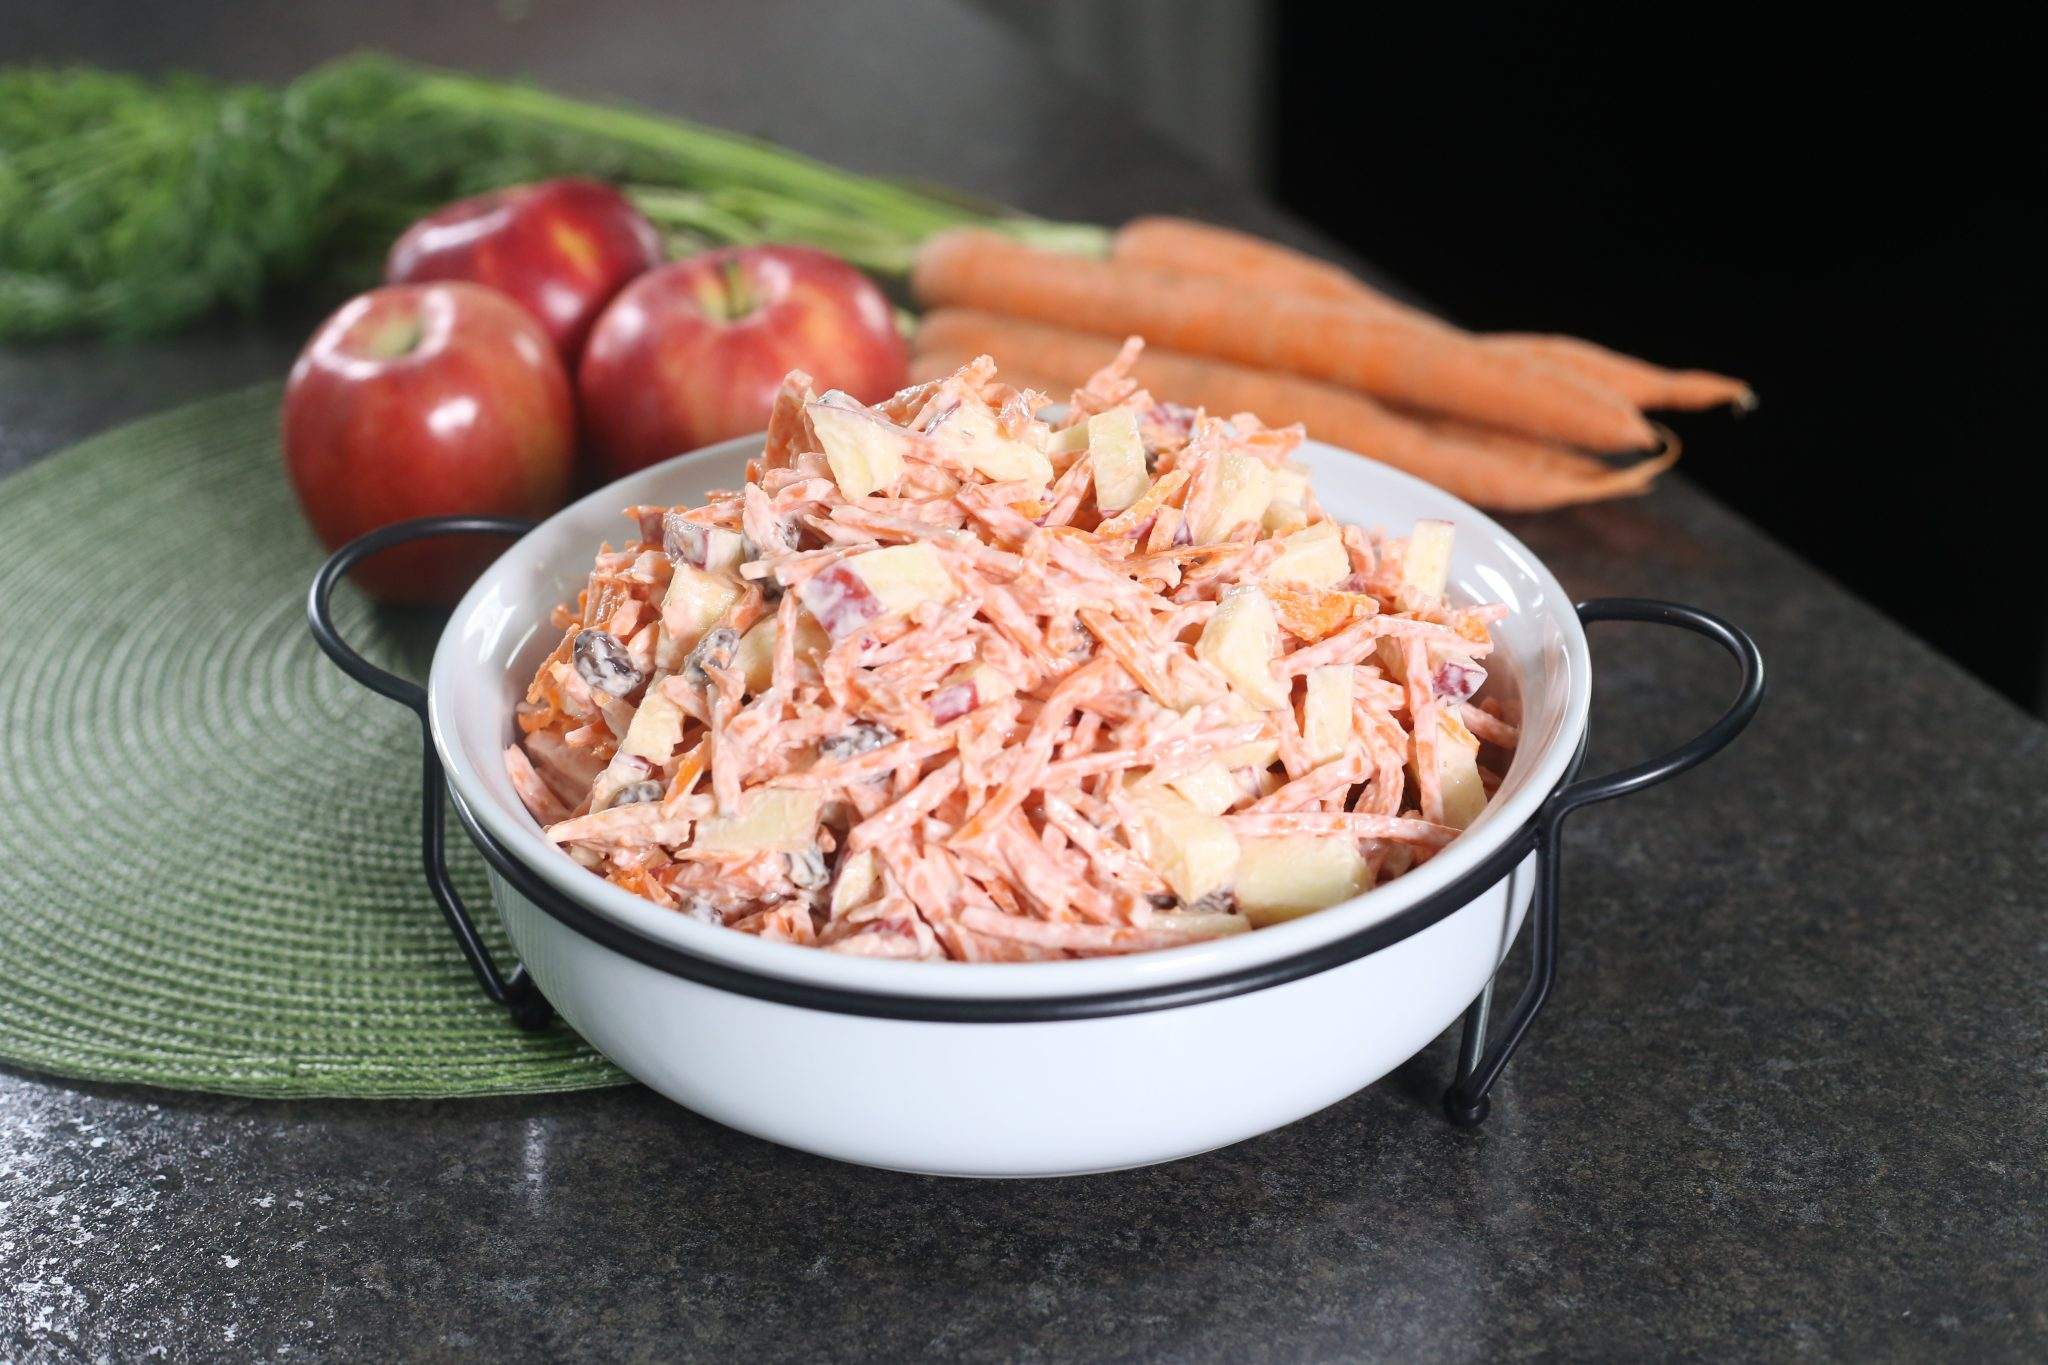 carrot salad in white cup